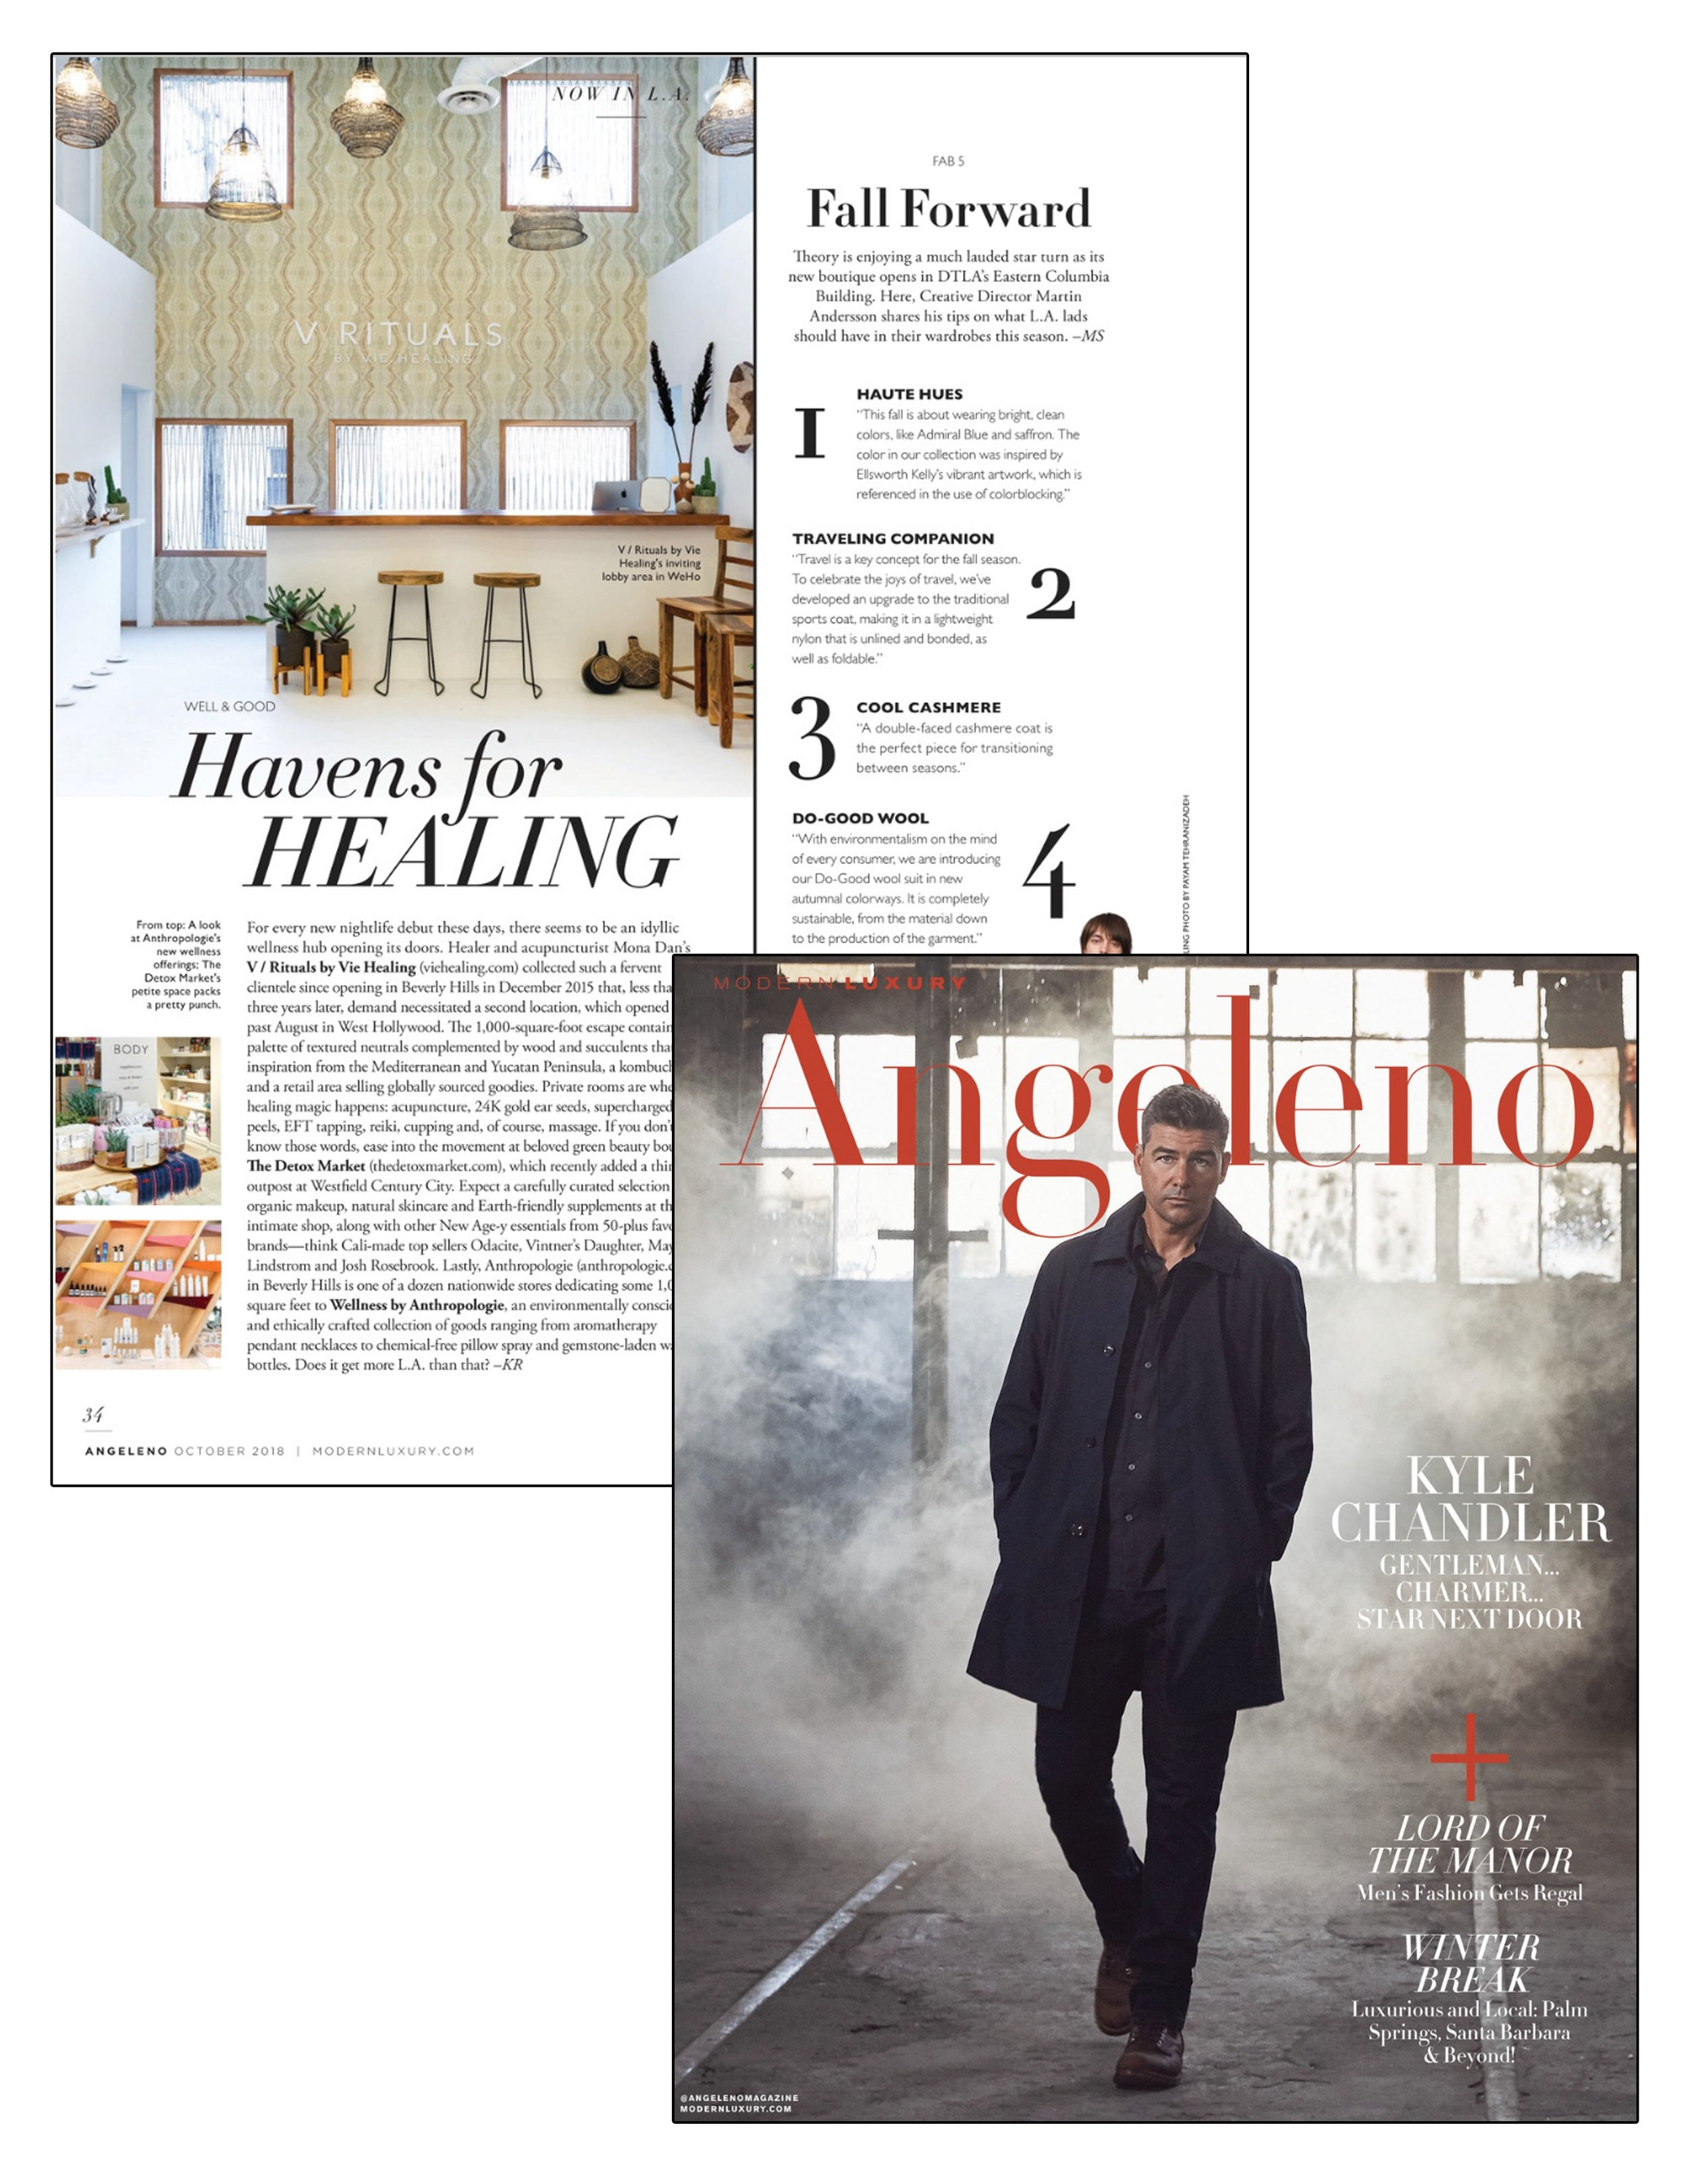 October 2018 - Angeleno Magazine - Vie Healing.jpg